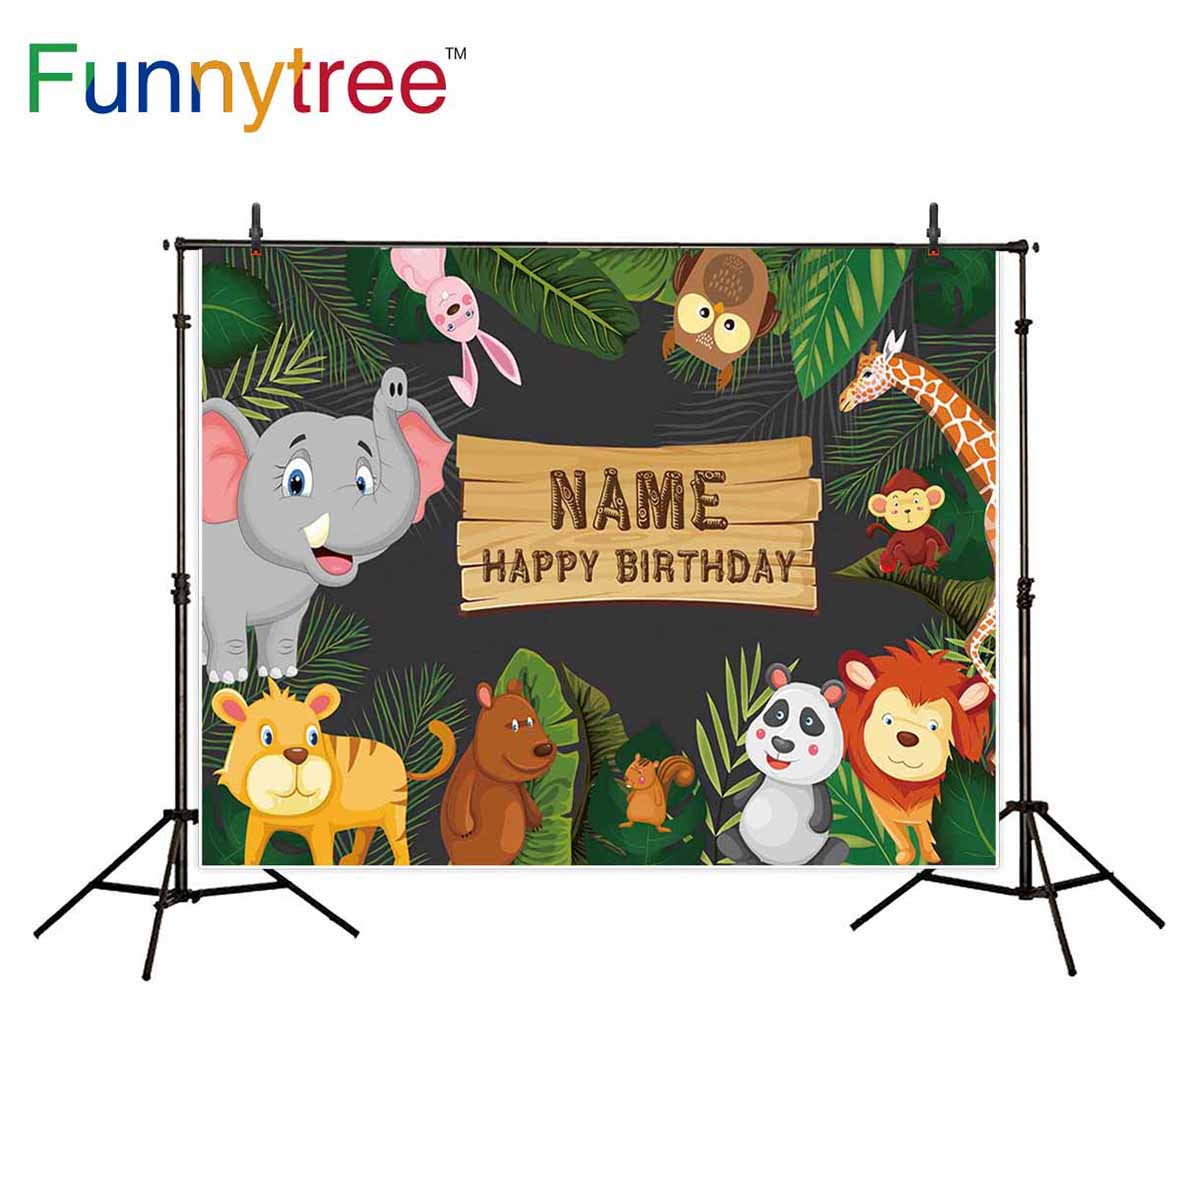 Funnytree birthday backgrounds for photography studio Jungle party animals cartoon leaves forest kid backdrop printed photocall the window office paper sticker pervious to light do not transparent bathroom window shading white frosted glass tint